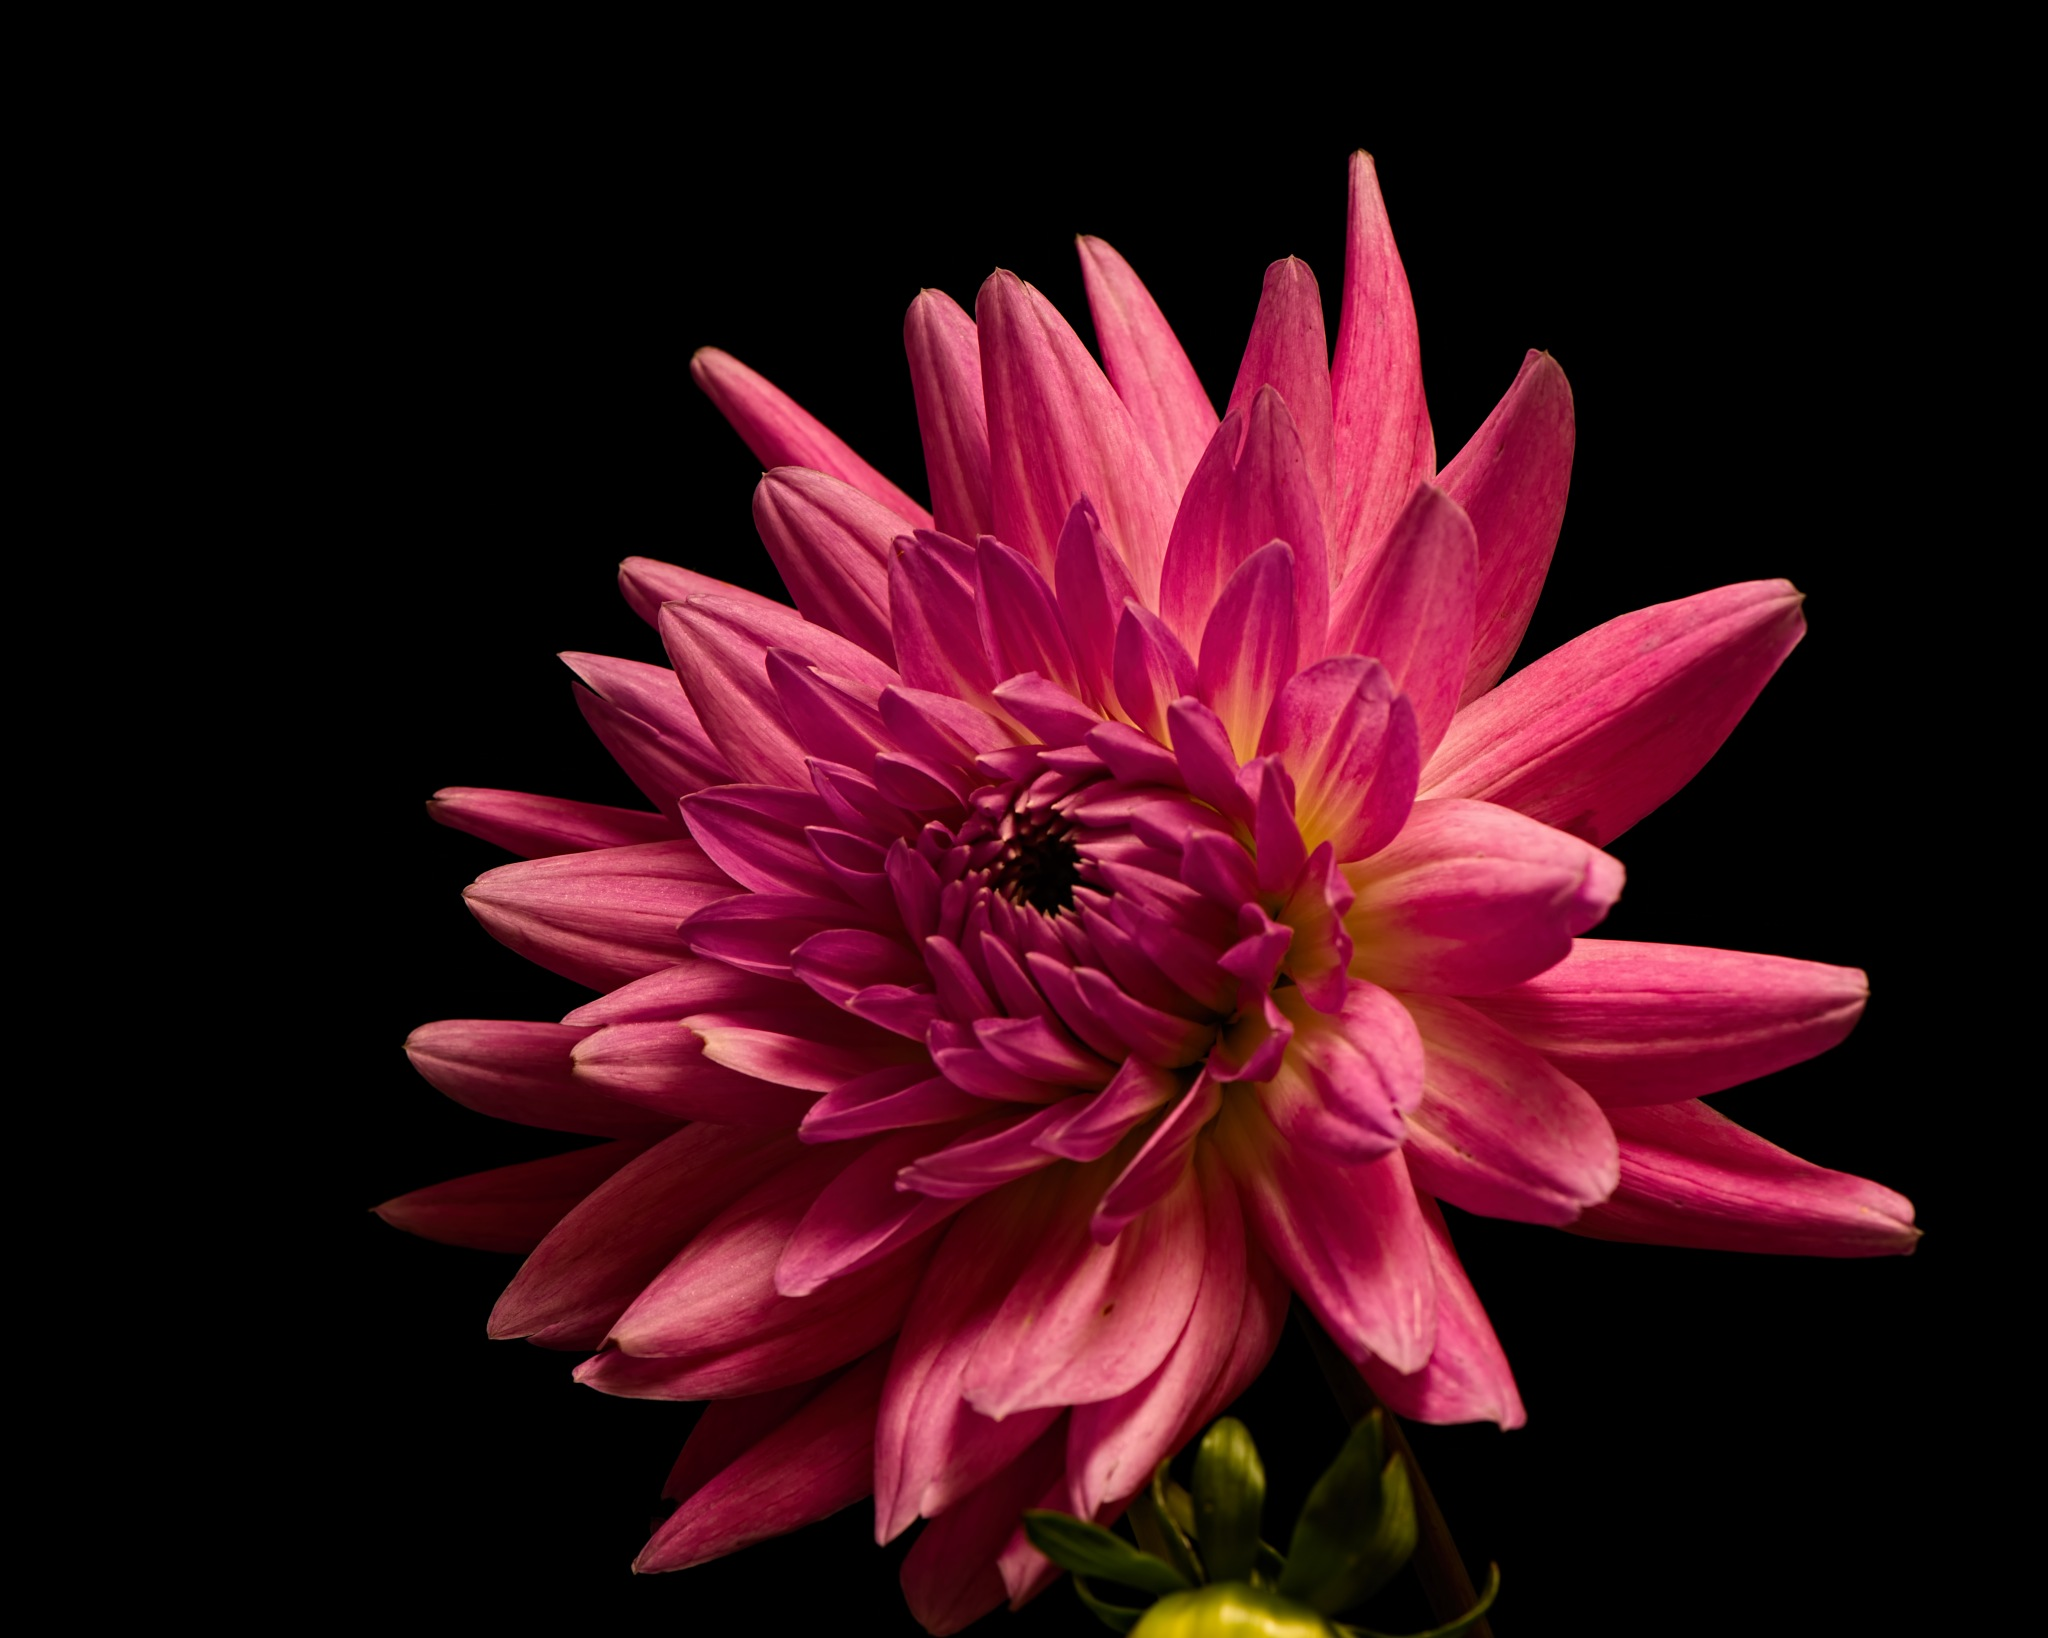 Pink Dahlia Bloom 1011 by ThomasJerger